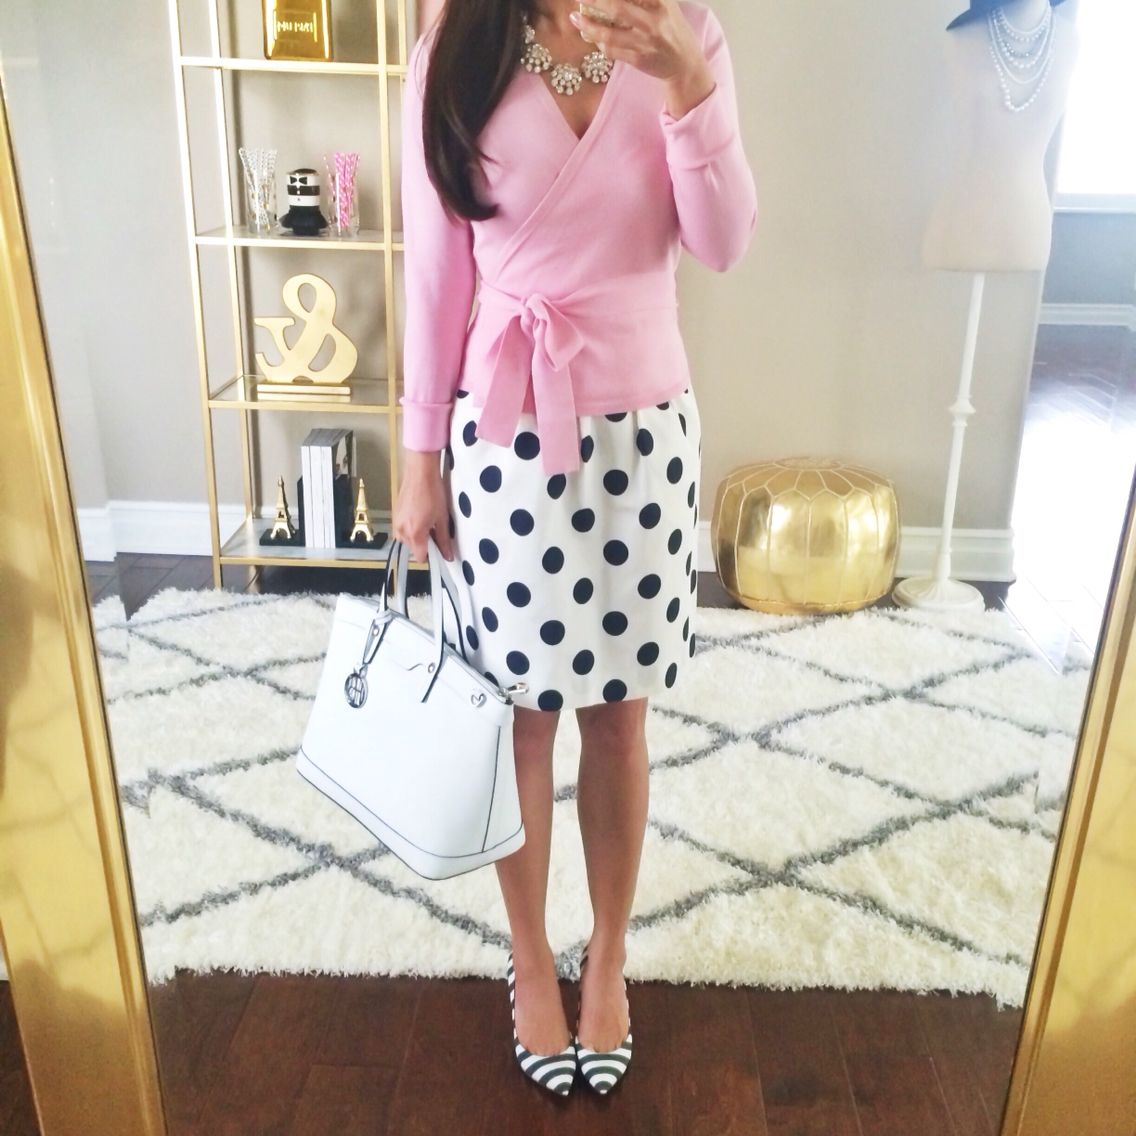 Ballerina pink wrap sweater, statement necklace, white and black polka dot skirt, striped pumps and white purse // Click the following link to see outfit details and photos:    http://www.stylishpetite.com/2015/03/dvf-spring-stripes-burberry-trench-coat.html